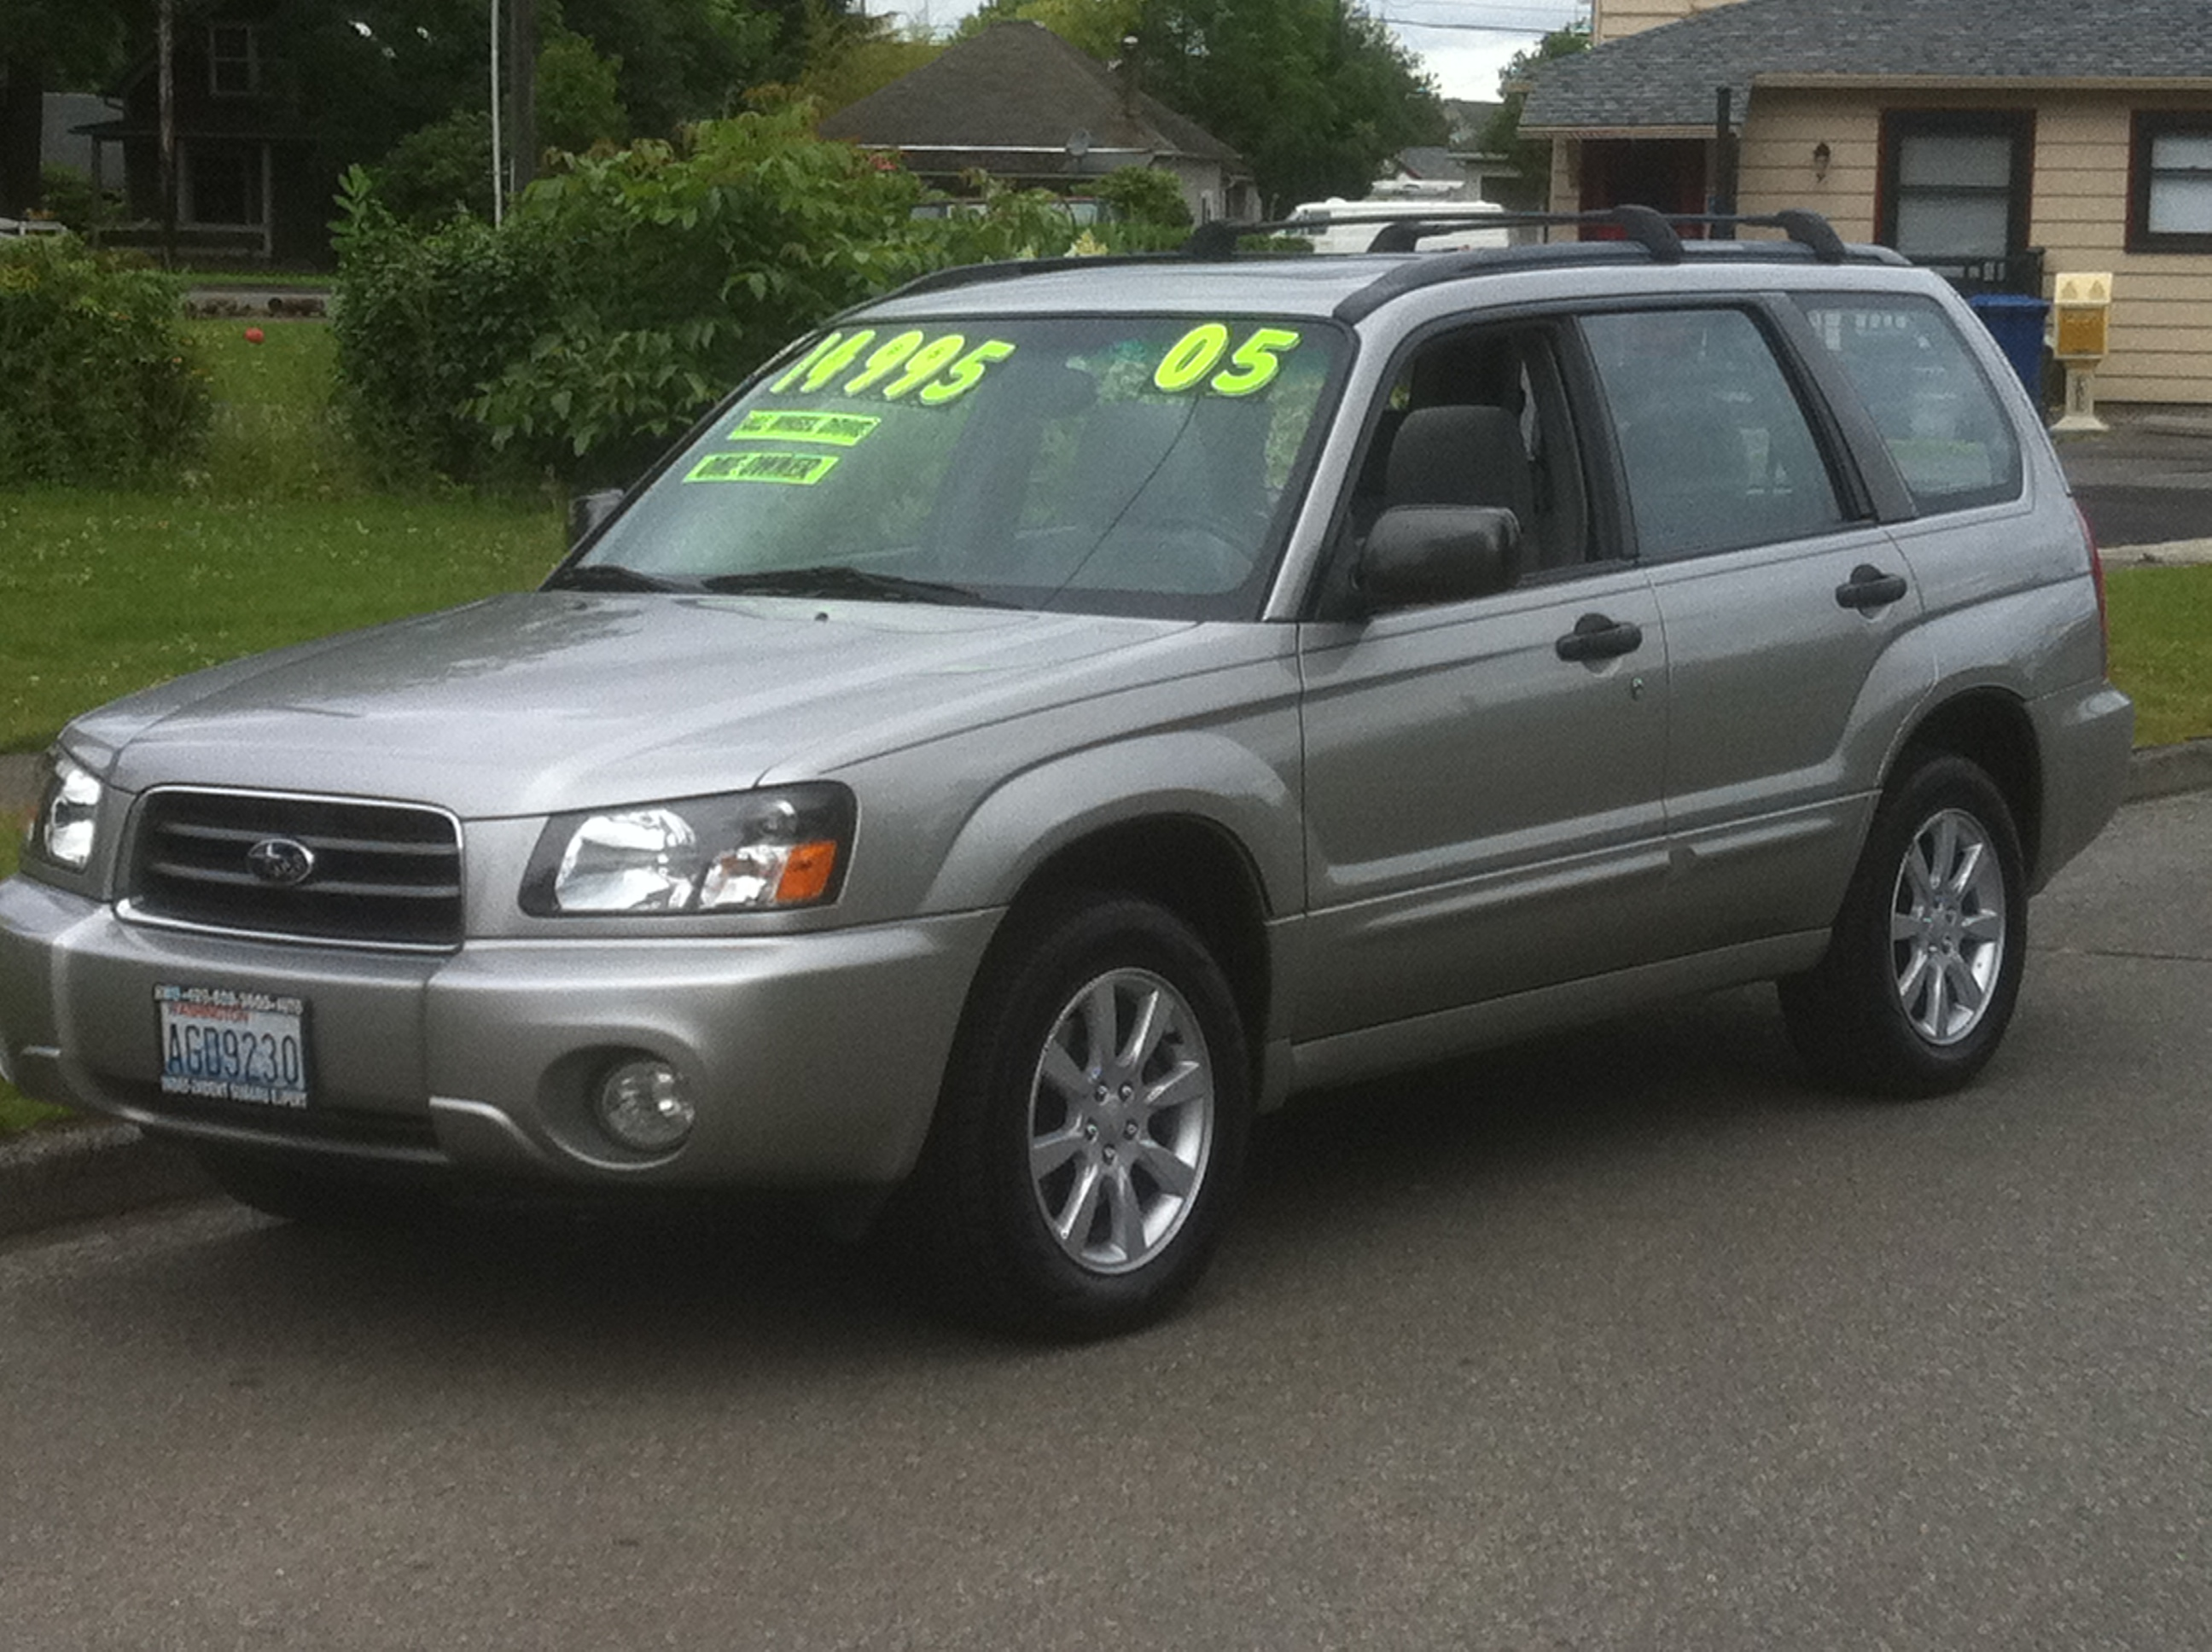 2005 Subaru Forester 2.5 Xs >> 2005 Subaru forester 2.5 Xs | New Car Release